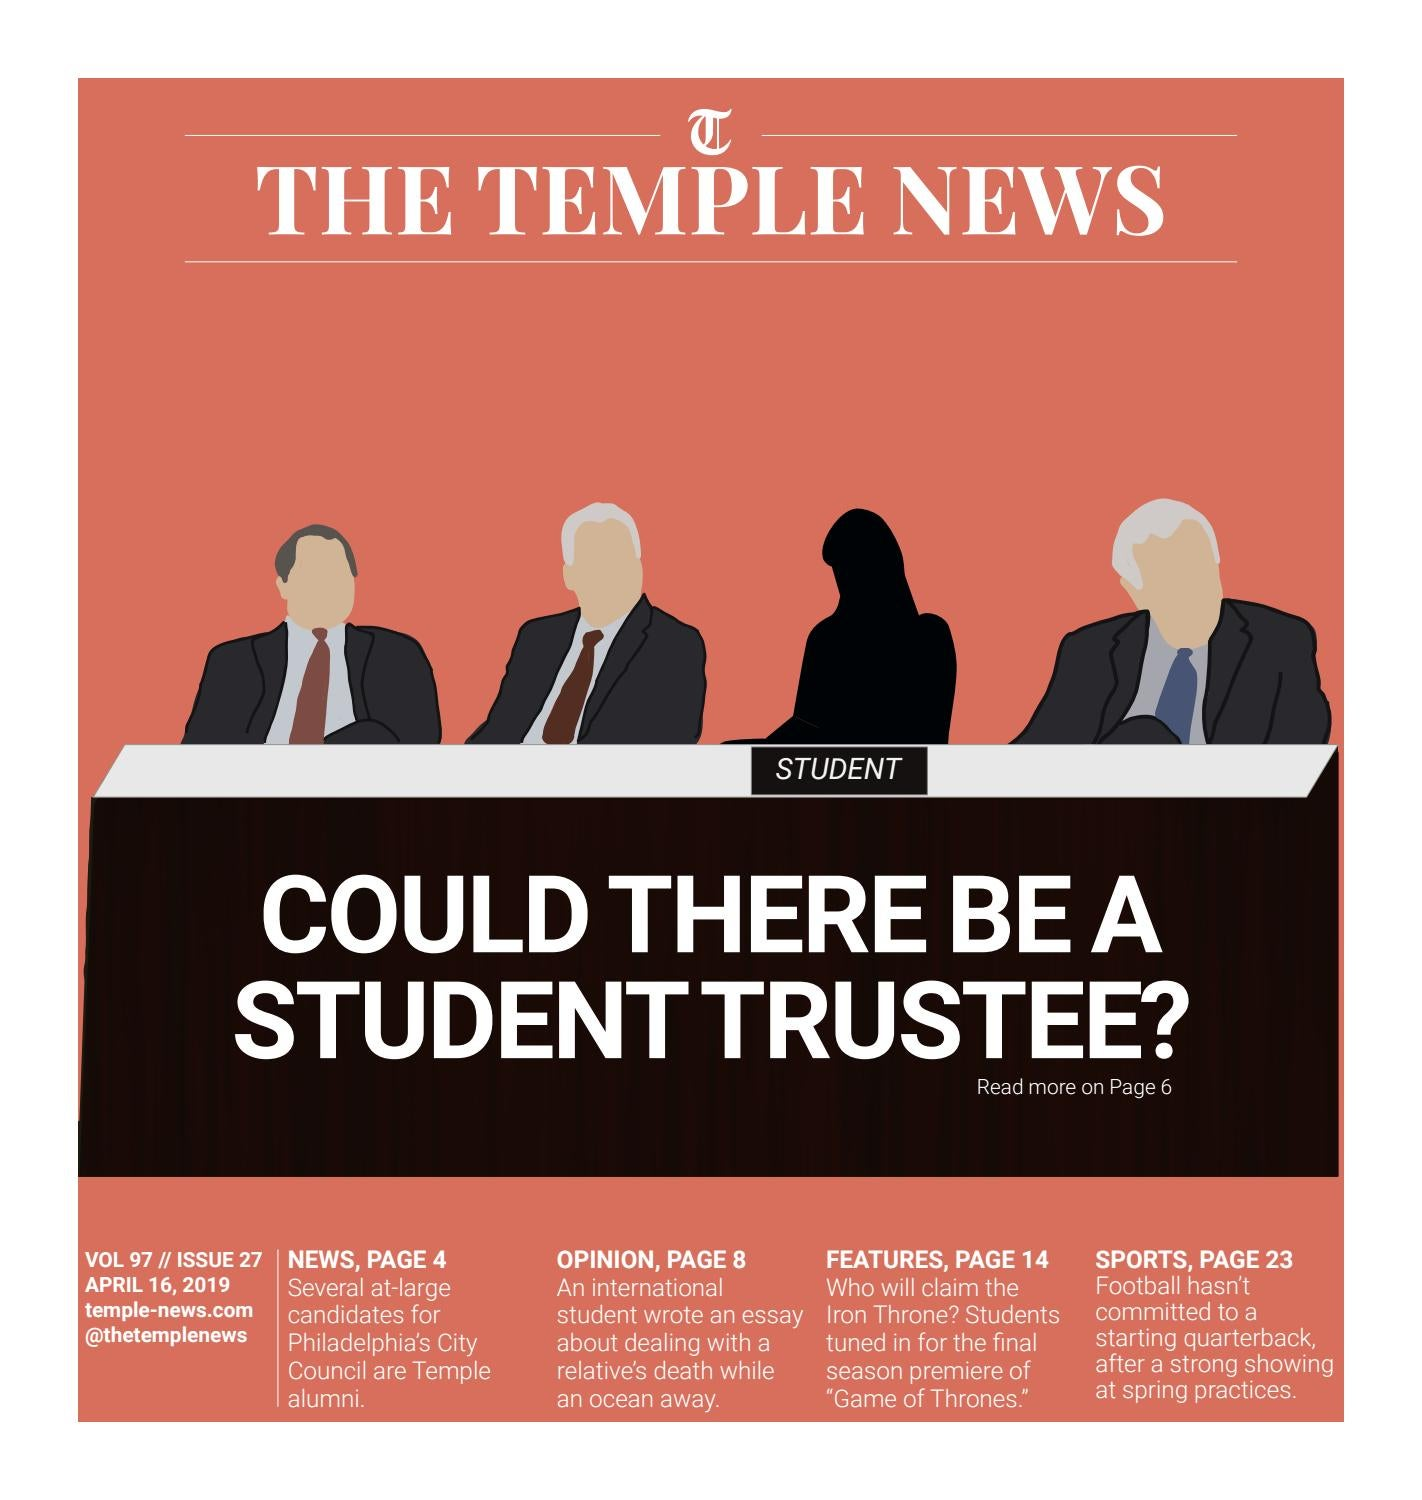 Vol  97 Iss  27 by The Temple News - issuu